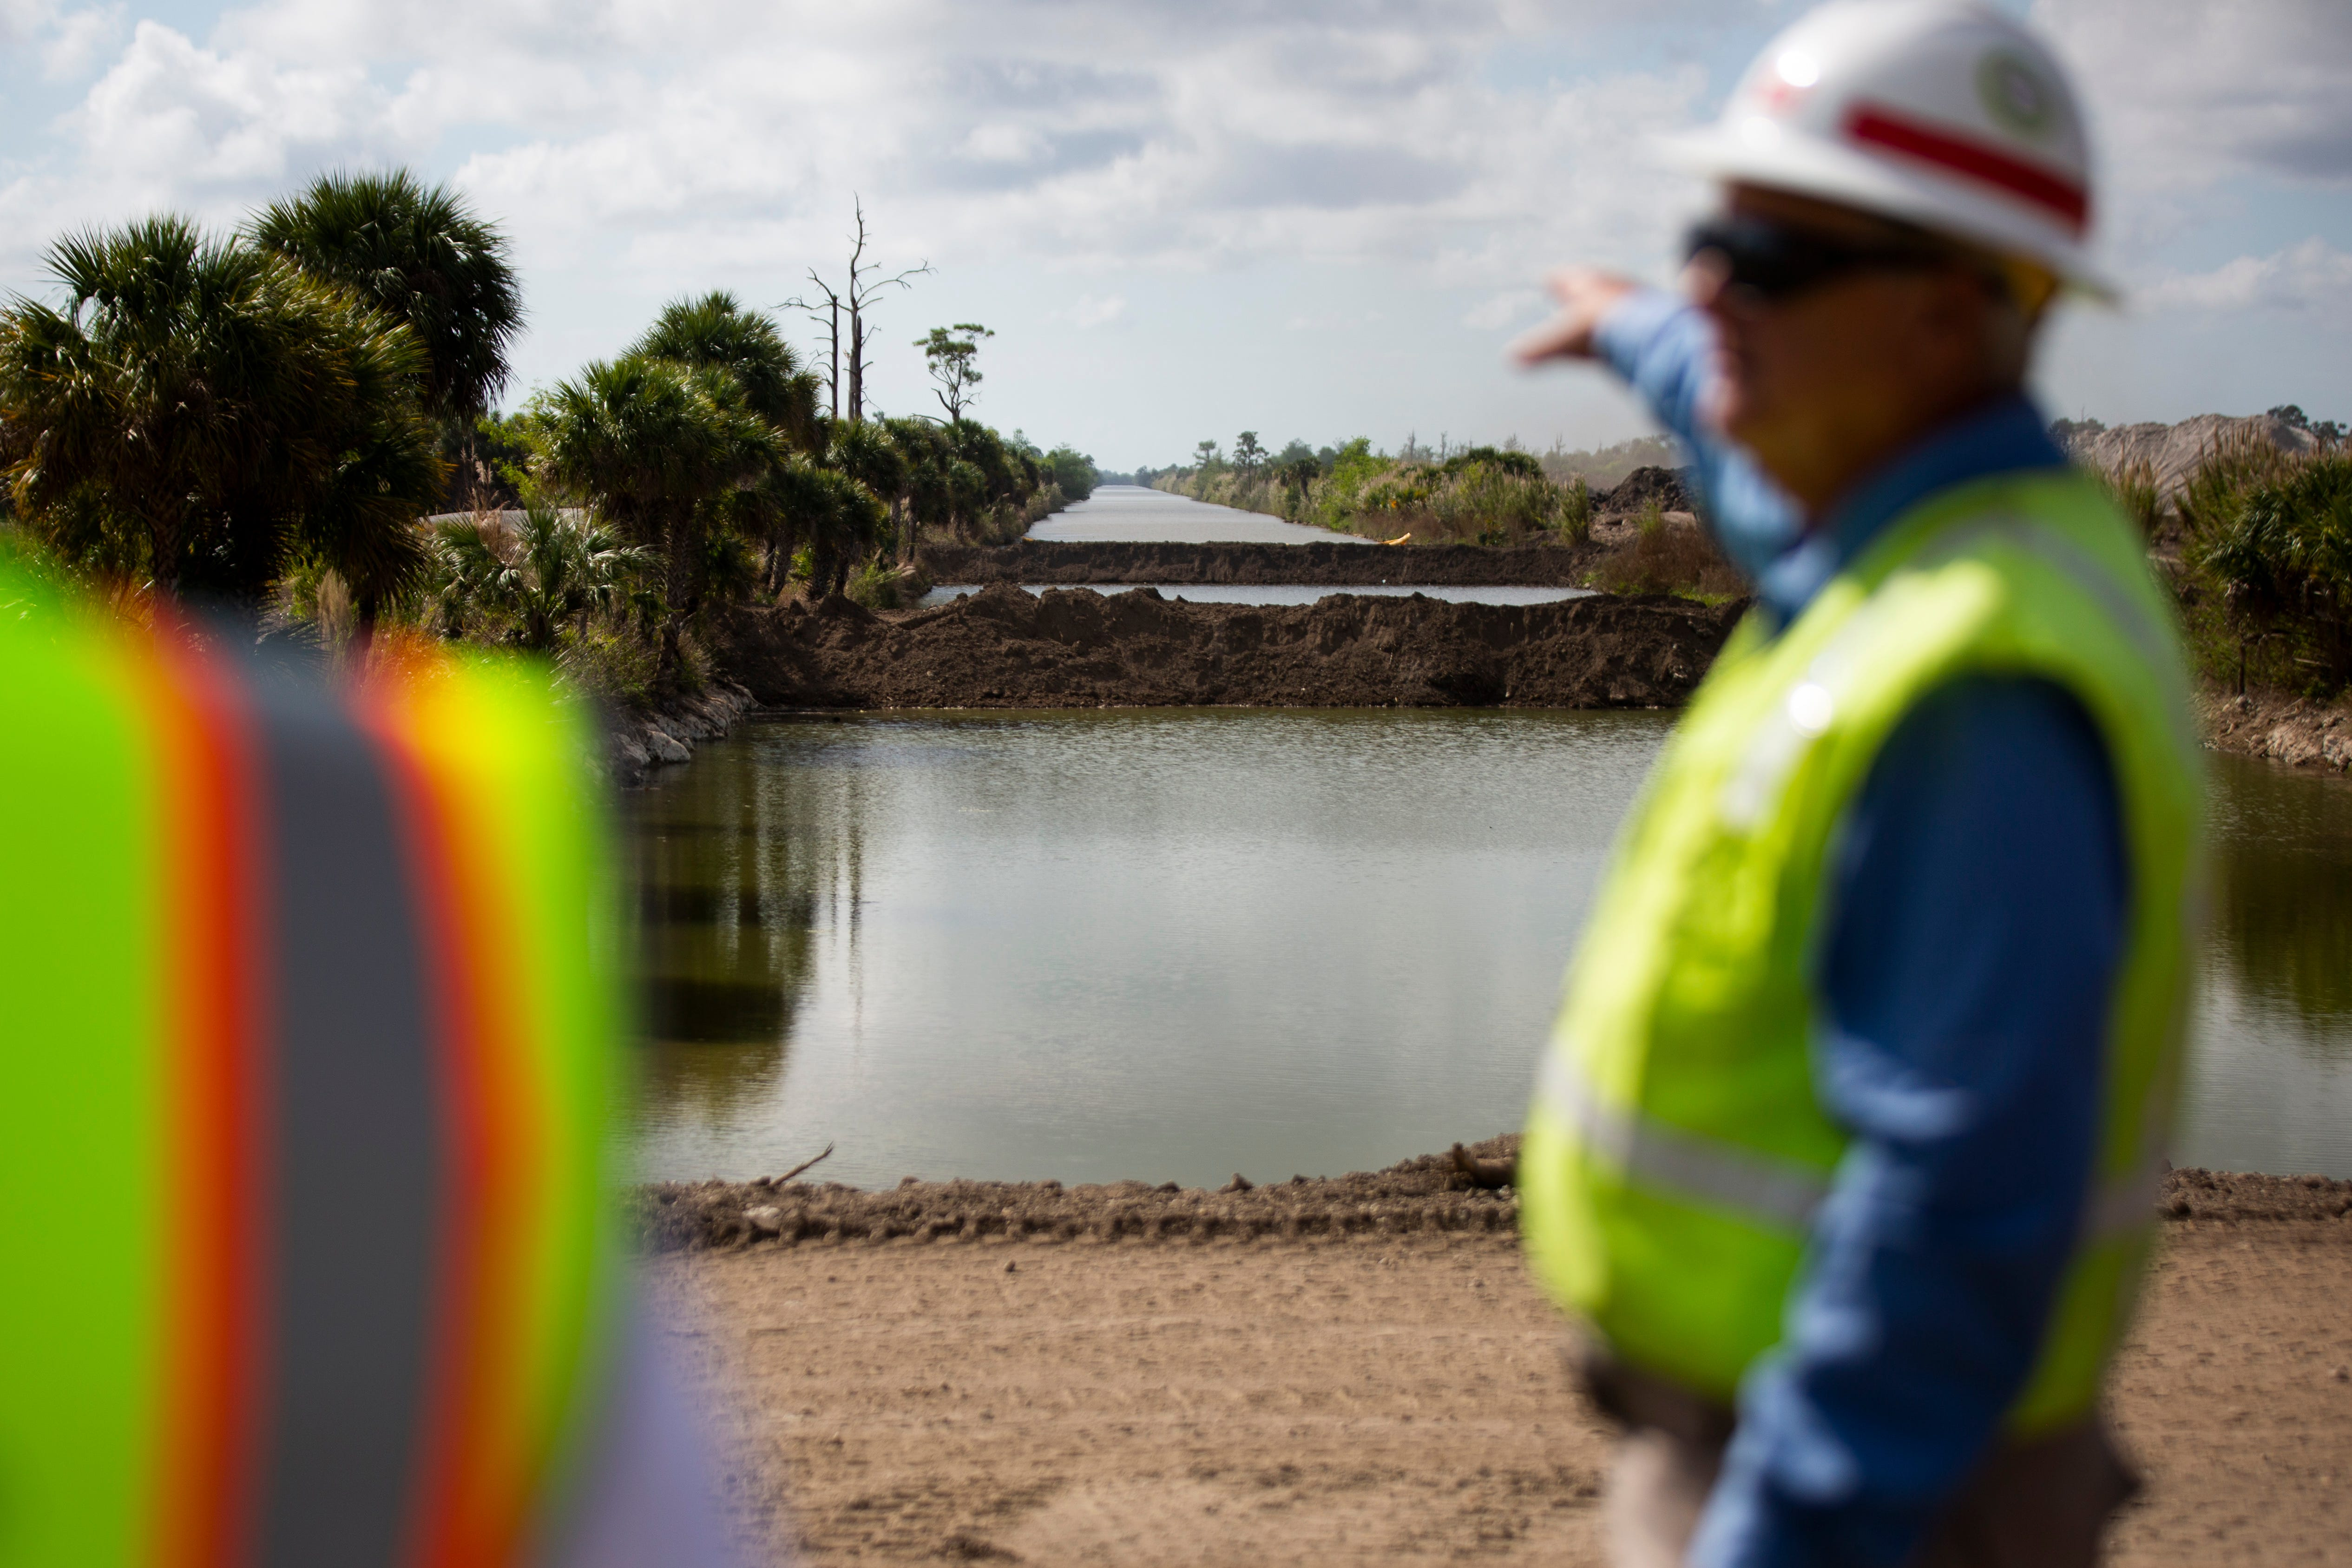 Picayune Strand restoration efforts moving forward with road removal, canal plugging 3